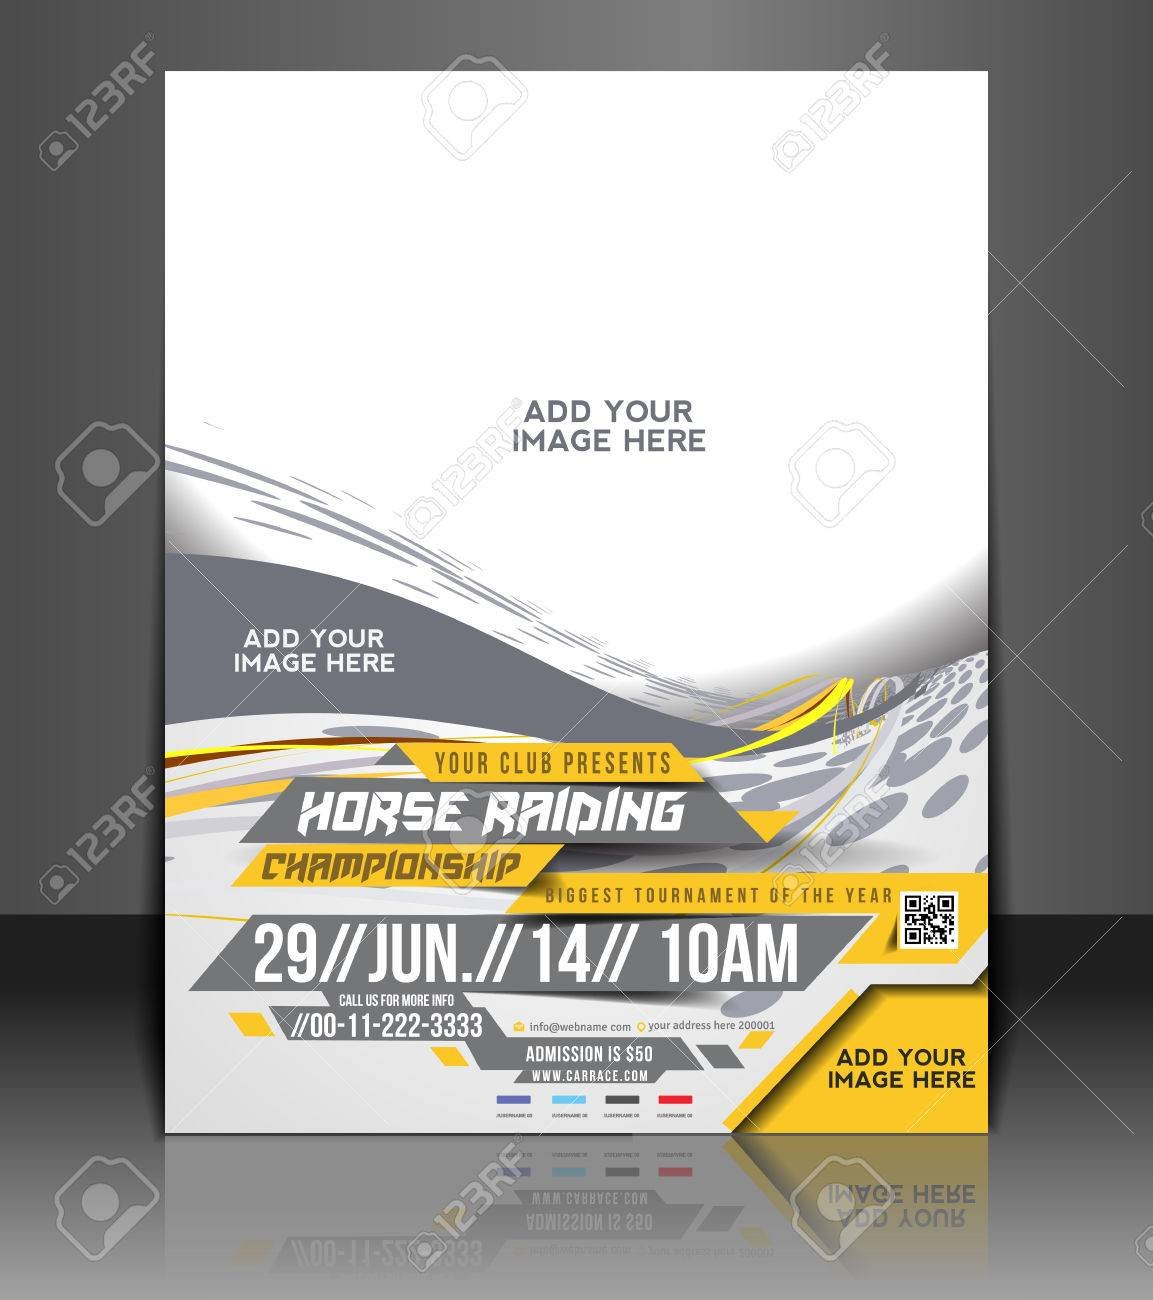 clean poster images stock pictures royalty clean poster clean poster horse riding flyer poster template design